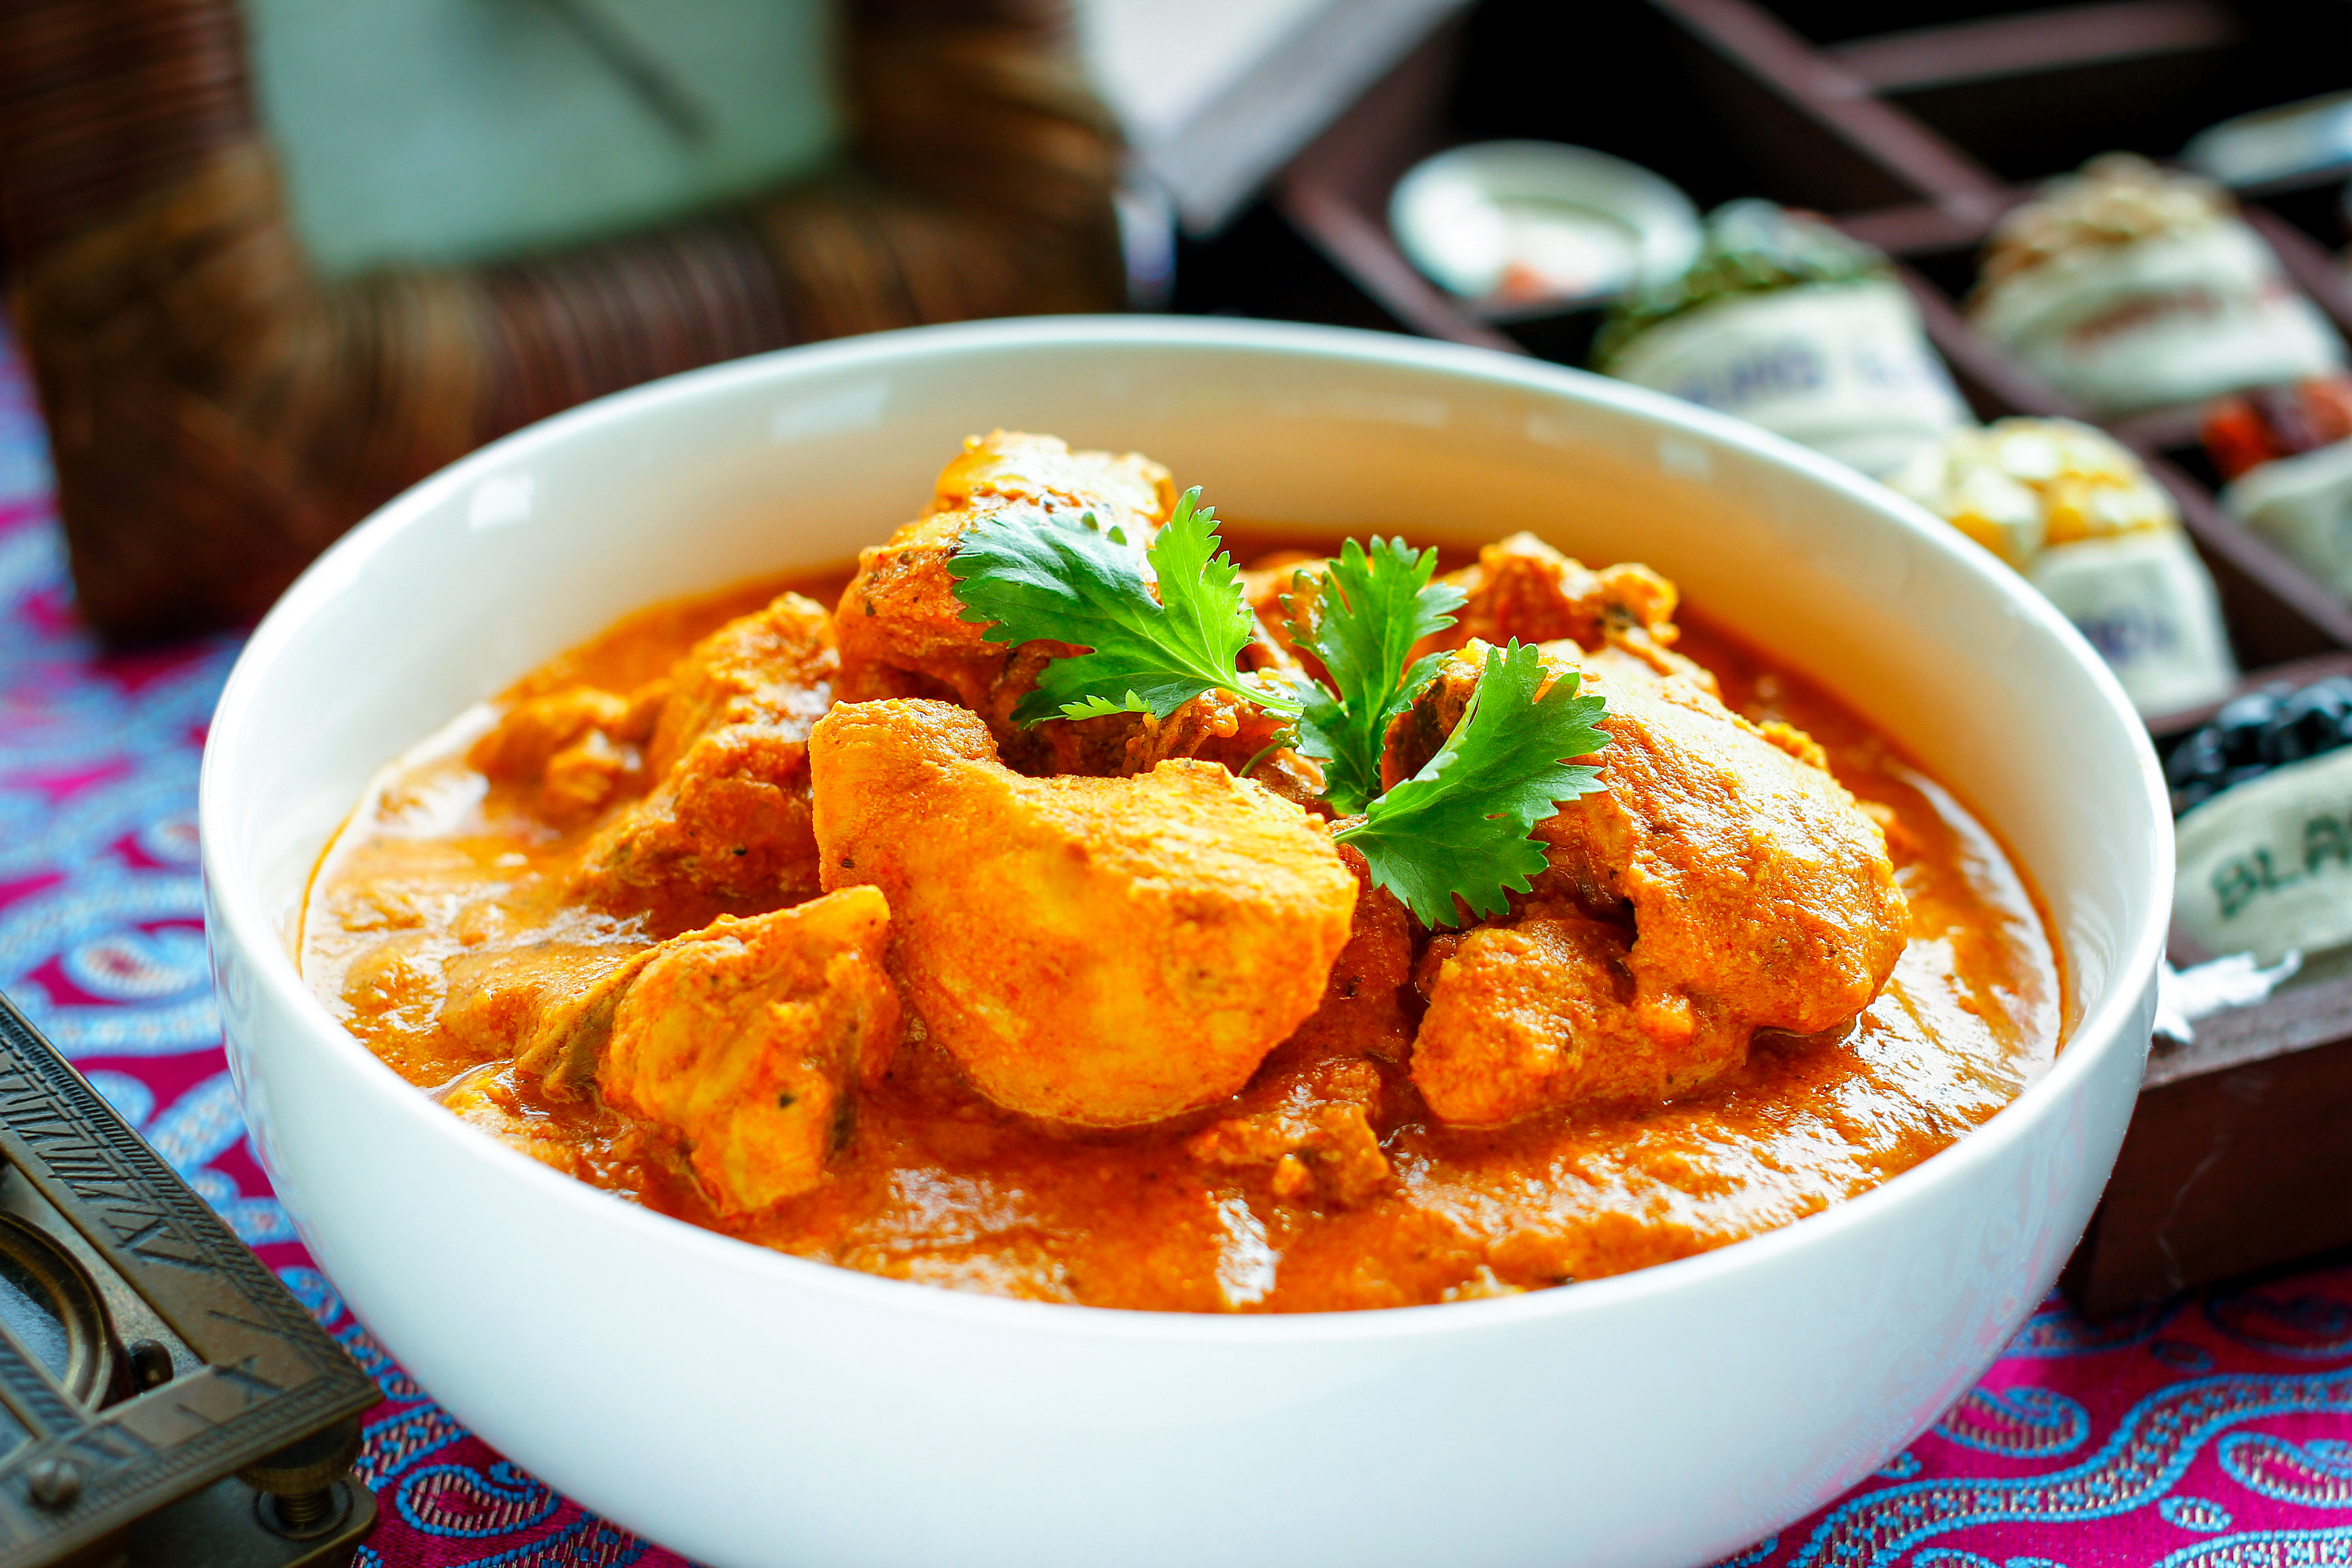 TBI Food Secrets: The Humble Origins of the Hugely Popular Butter Chicken